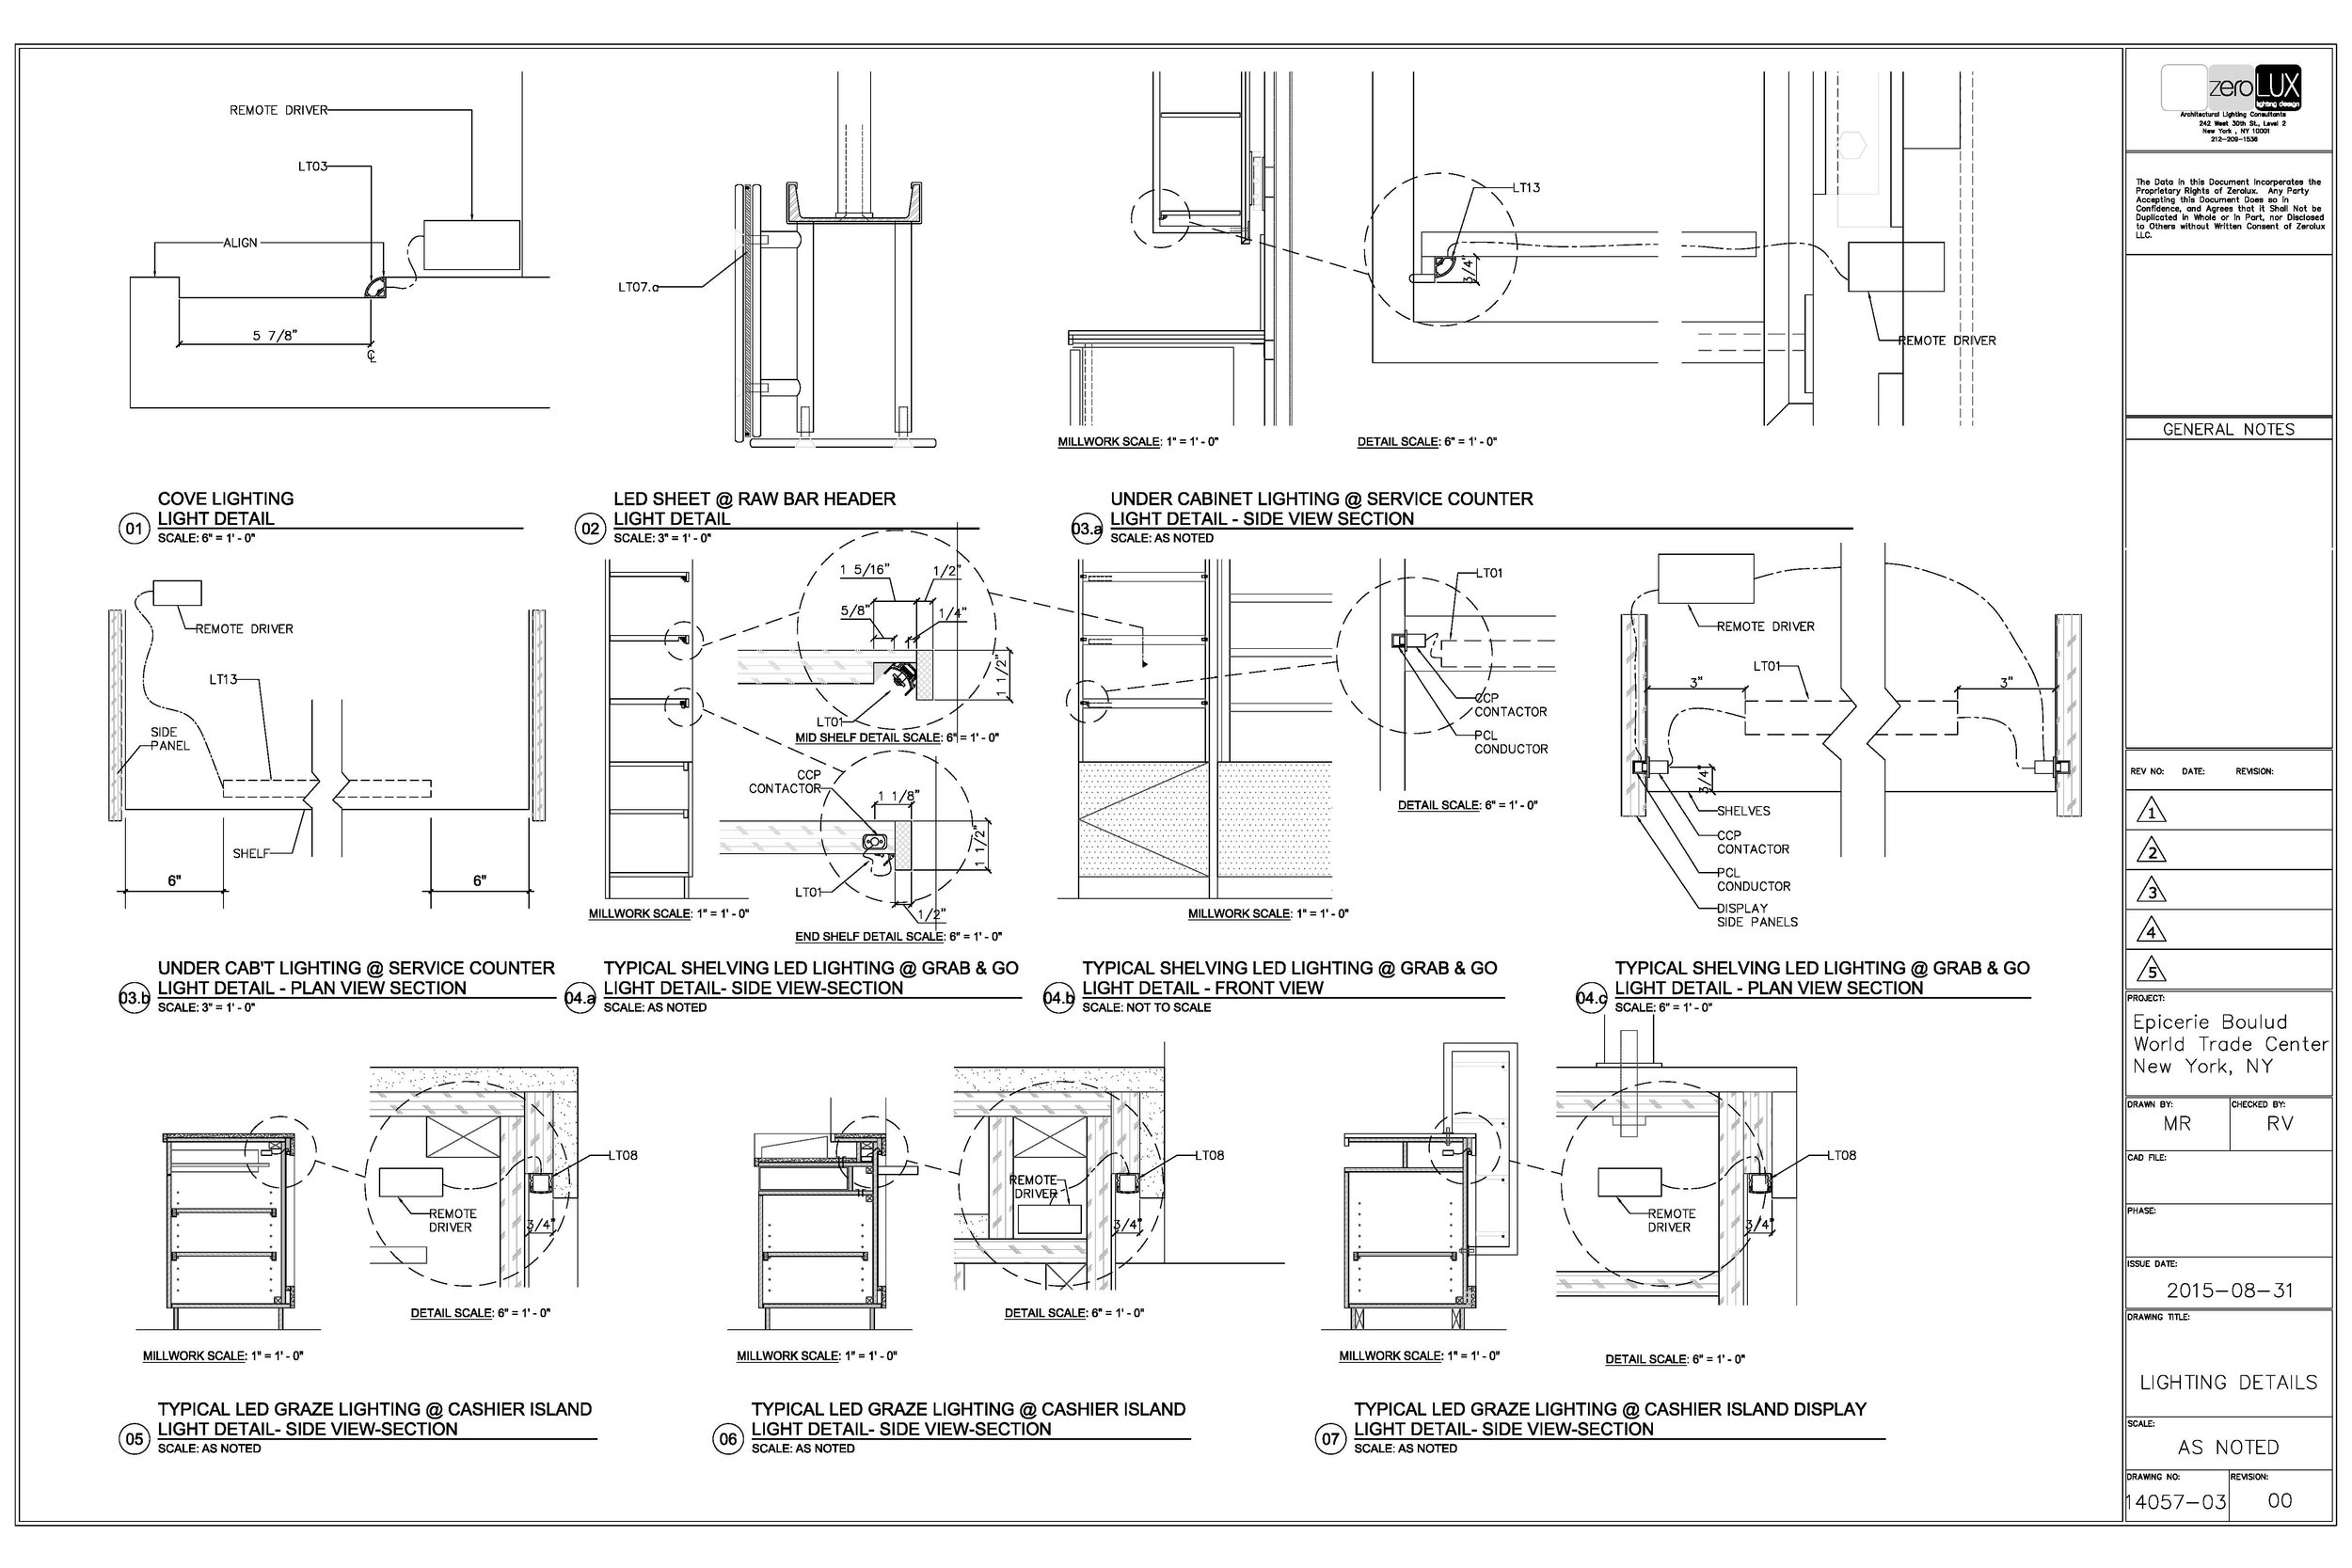 150831_14057_Lighting Plans, Details, Photometrics, Load Schedule, and Specifications.jpg